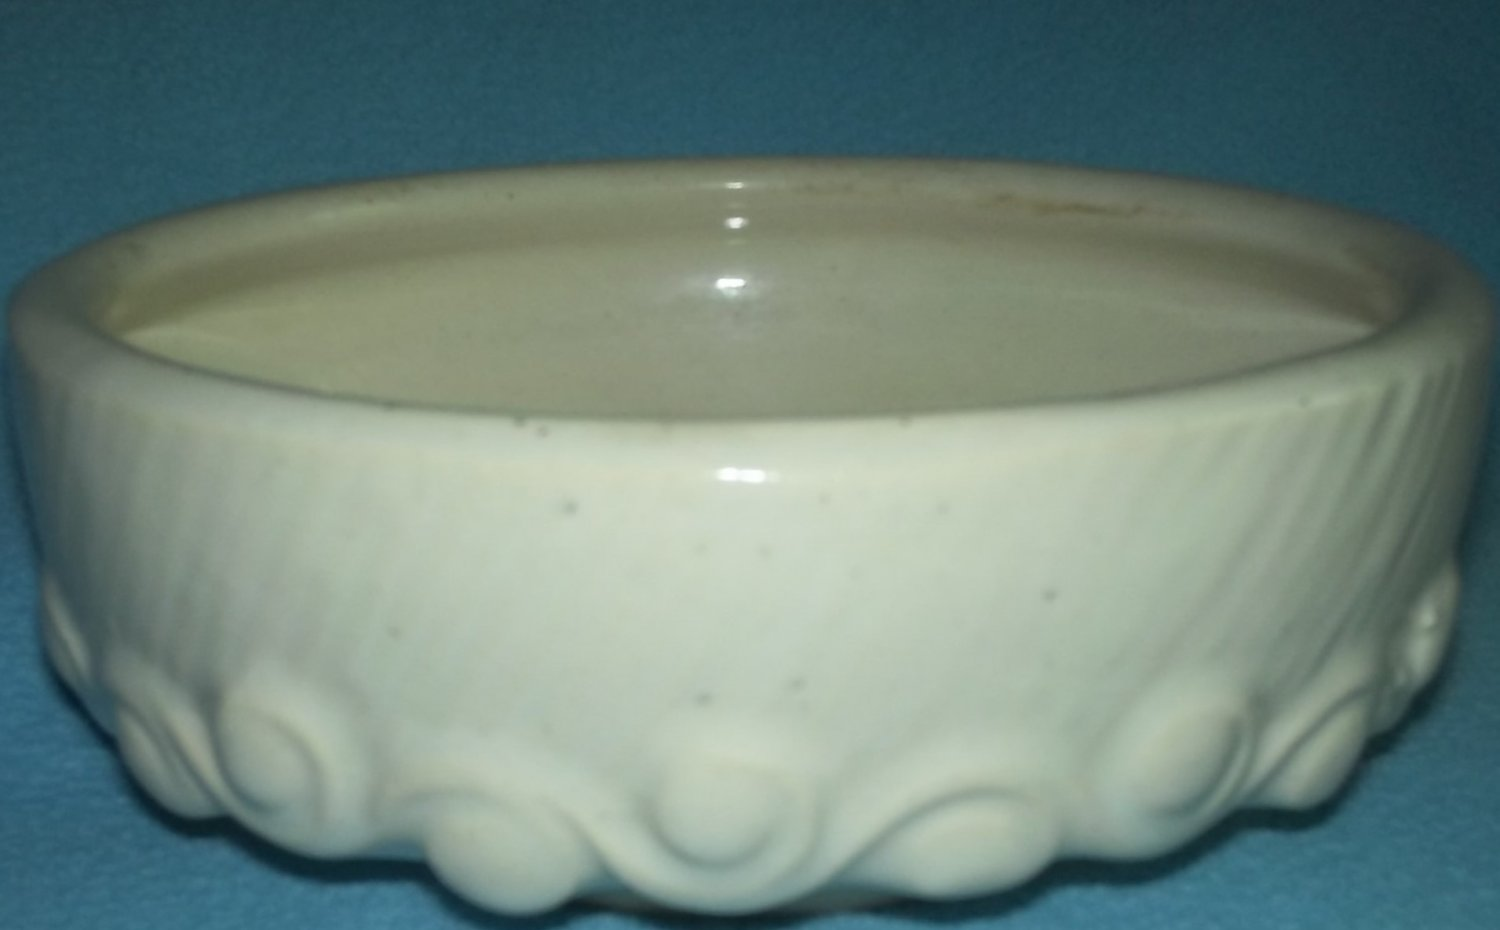 Vintage NELSON McCOY Planter CREAMY WHITE Waves Swirls Round 1940's